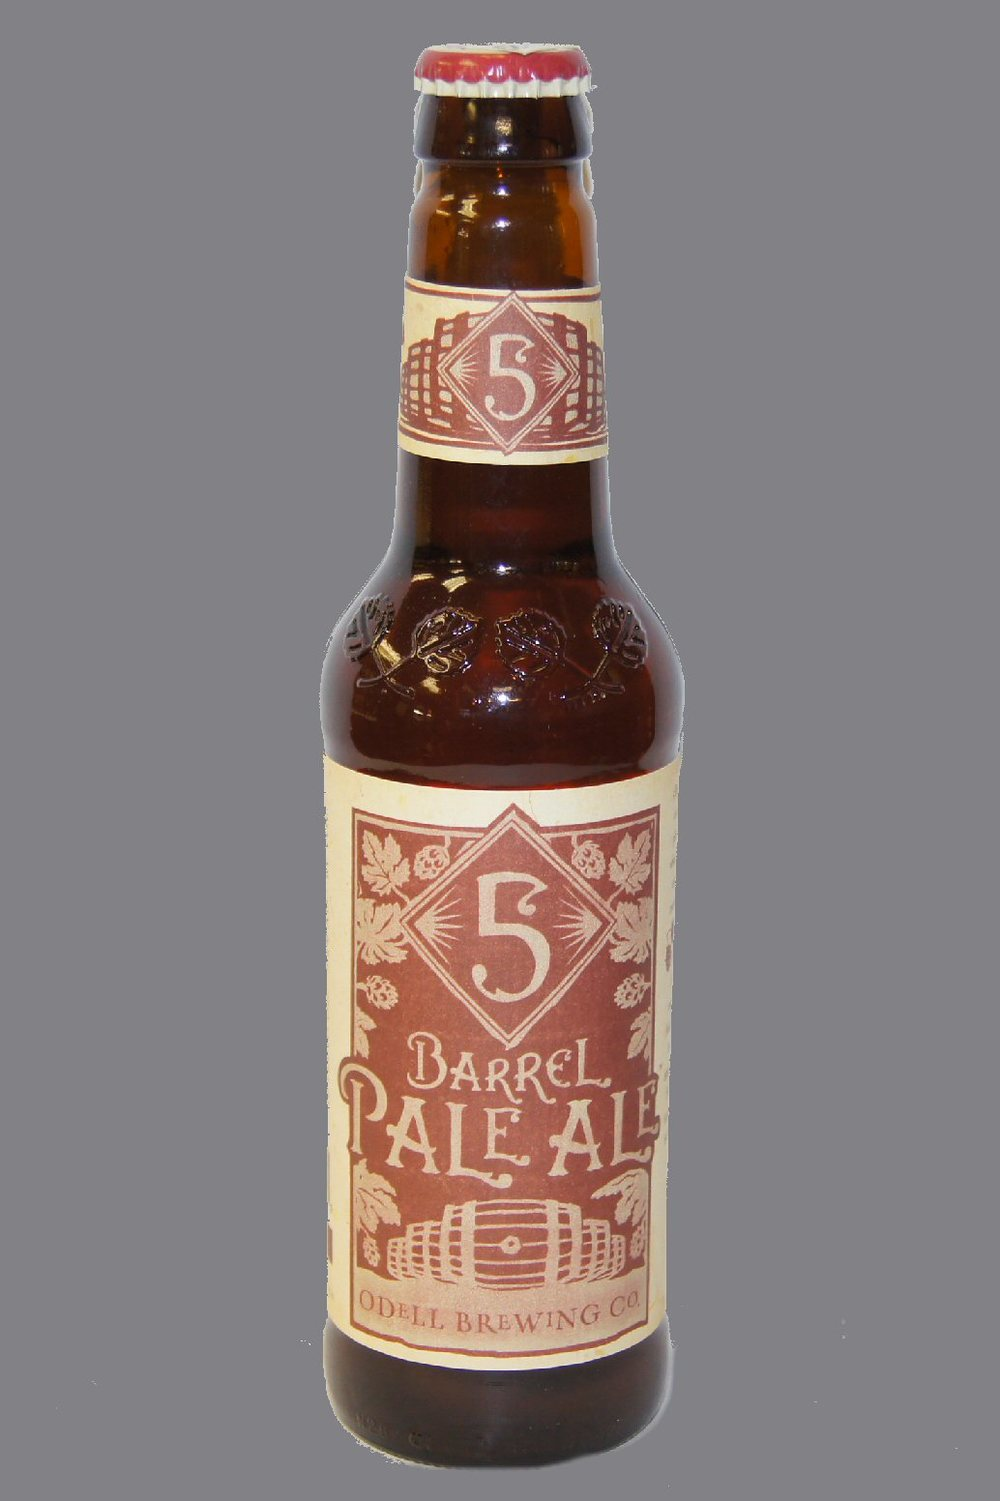 ODELL BREWERY-5Barrel Pale Ale.jpg